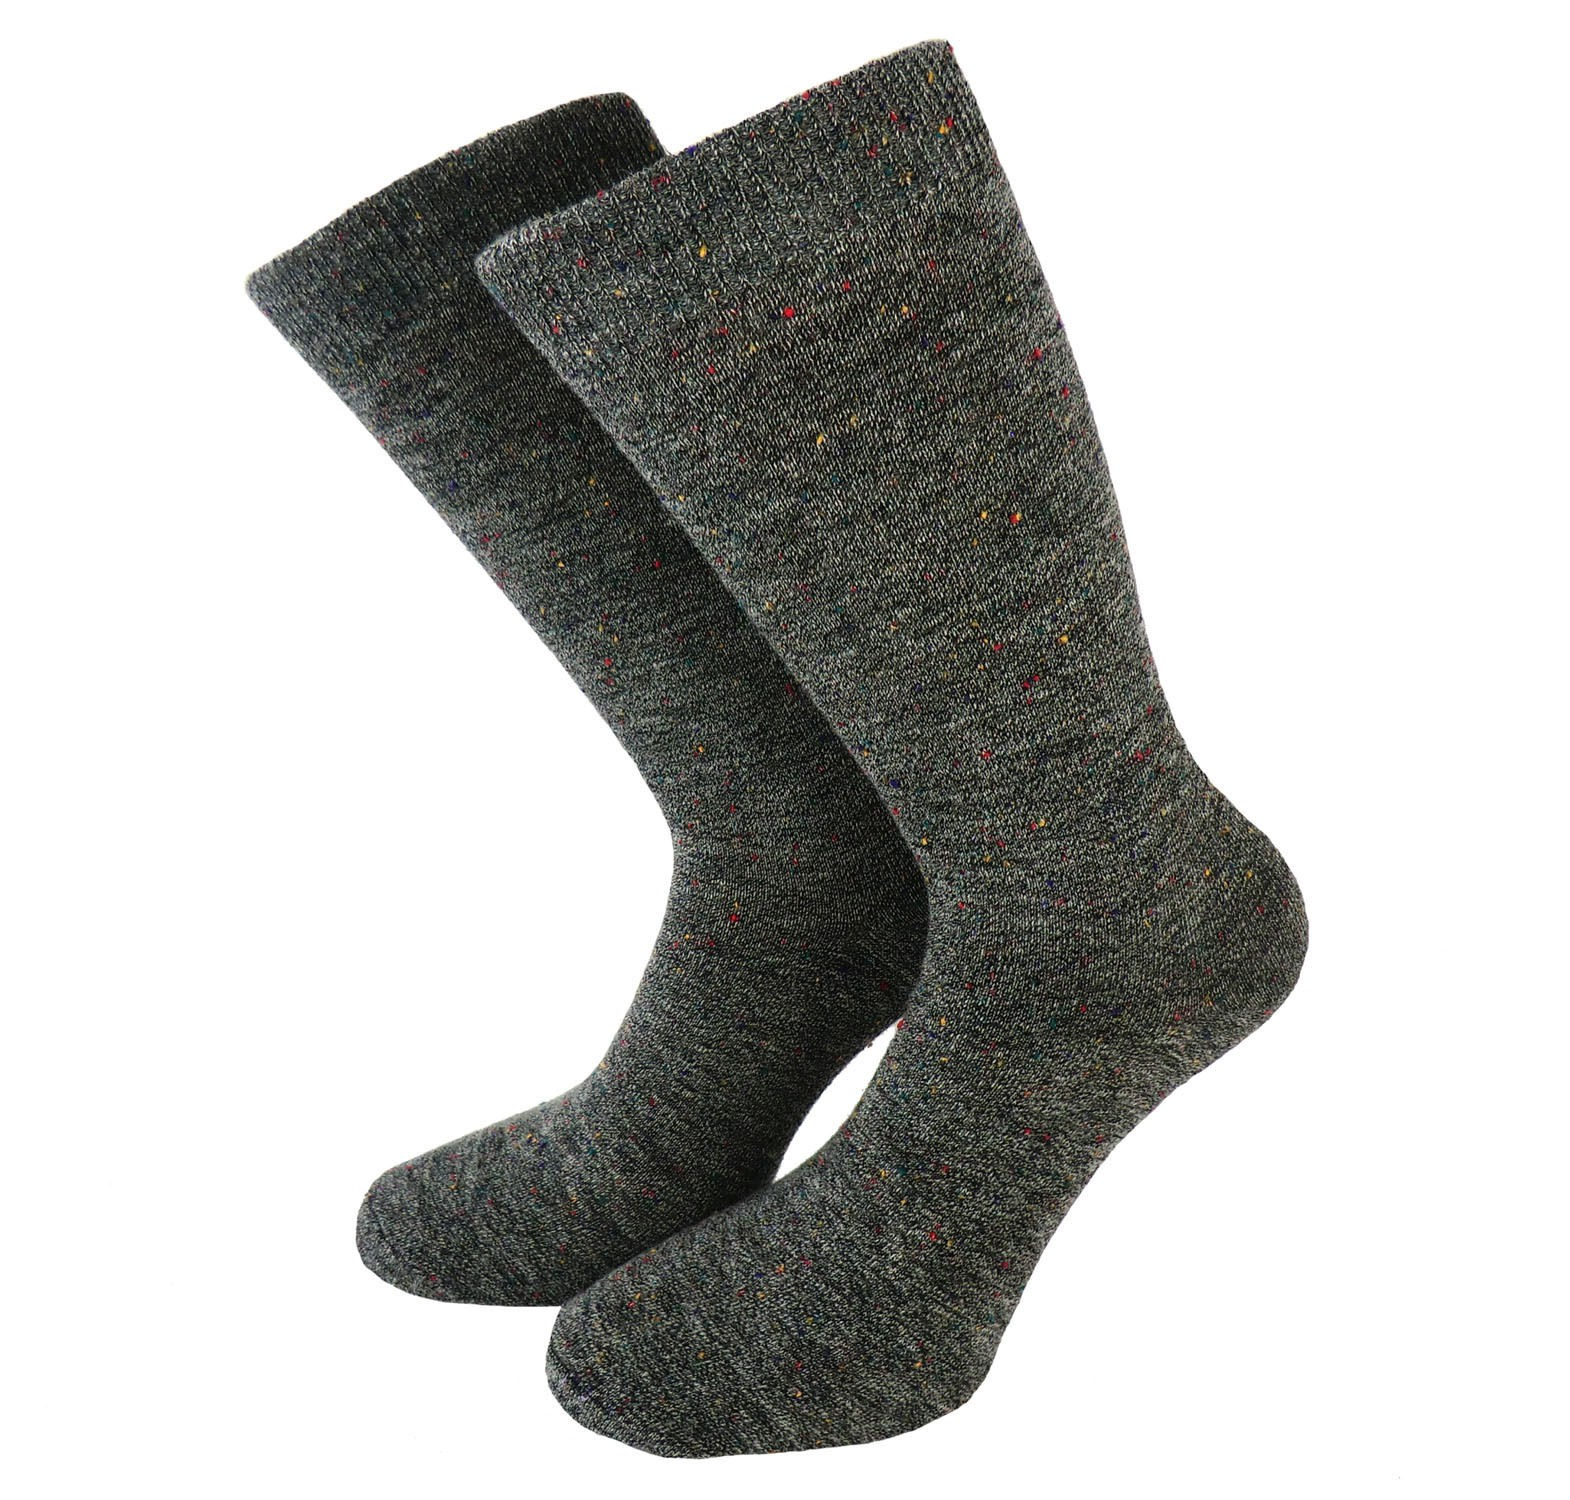 Socken, in old Swedish sokn (compare: Danish and bokmål sogn, nynorsk sokn) is an archaic name for the original country church parishes, kyrksocken. It also describes a secular area, a sockenkommun (